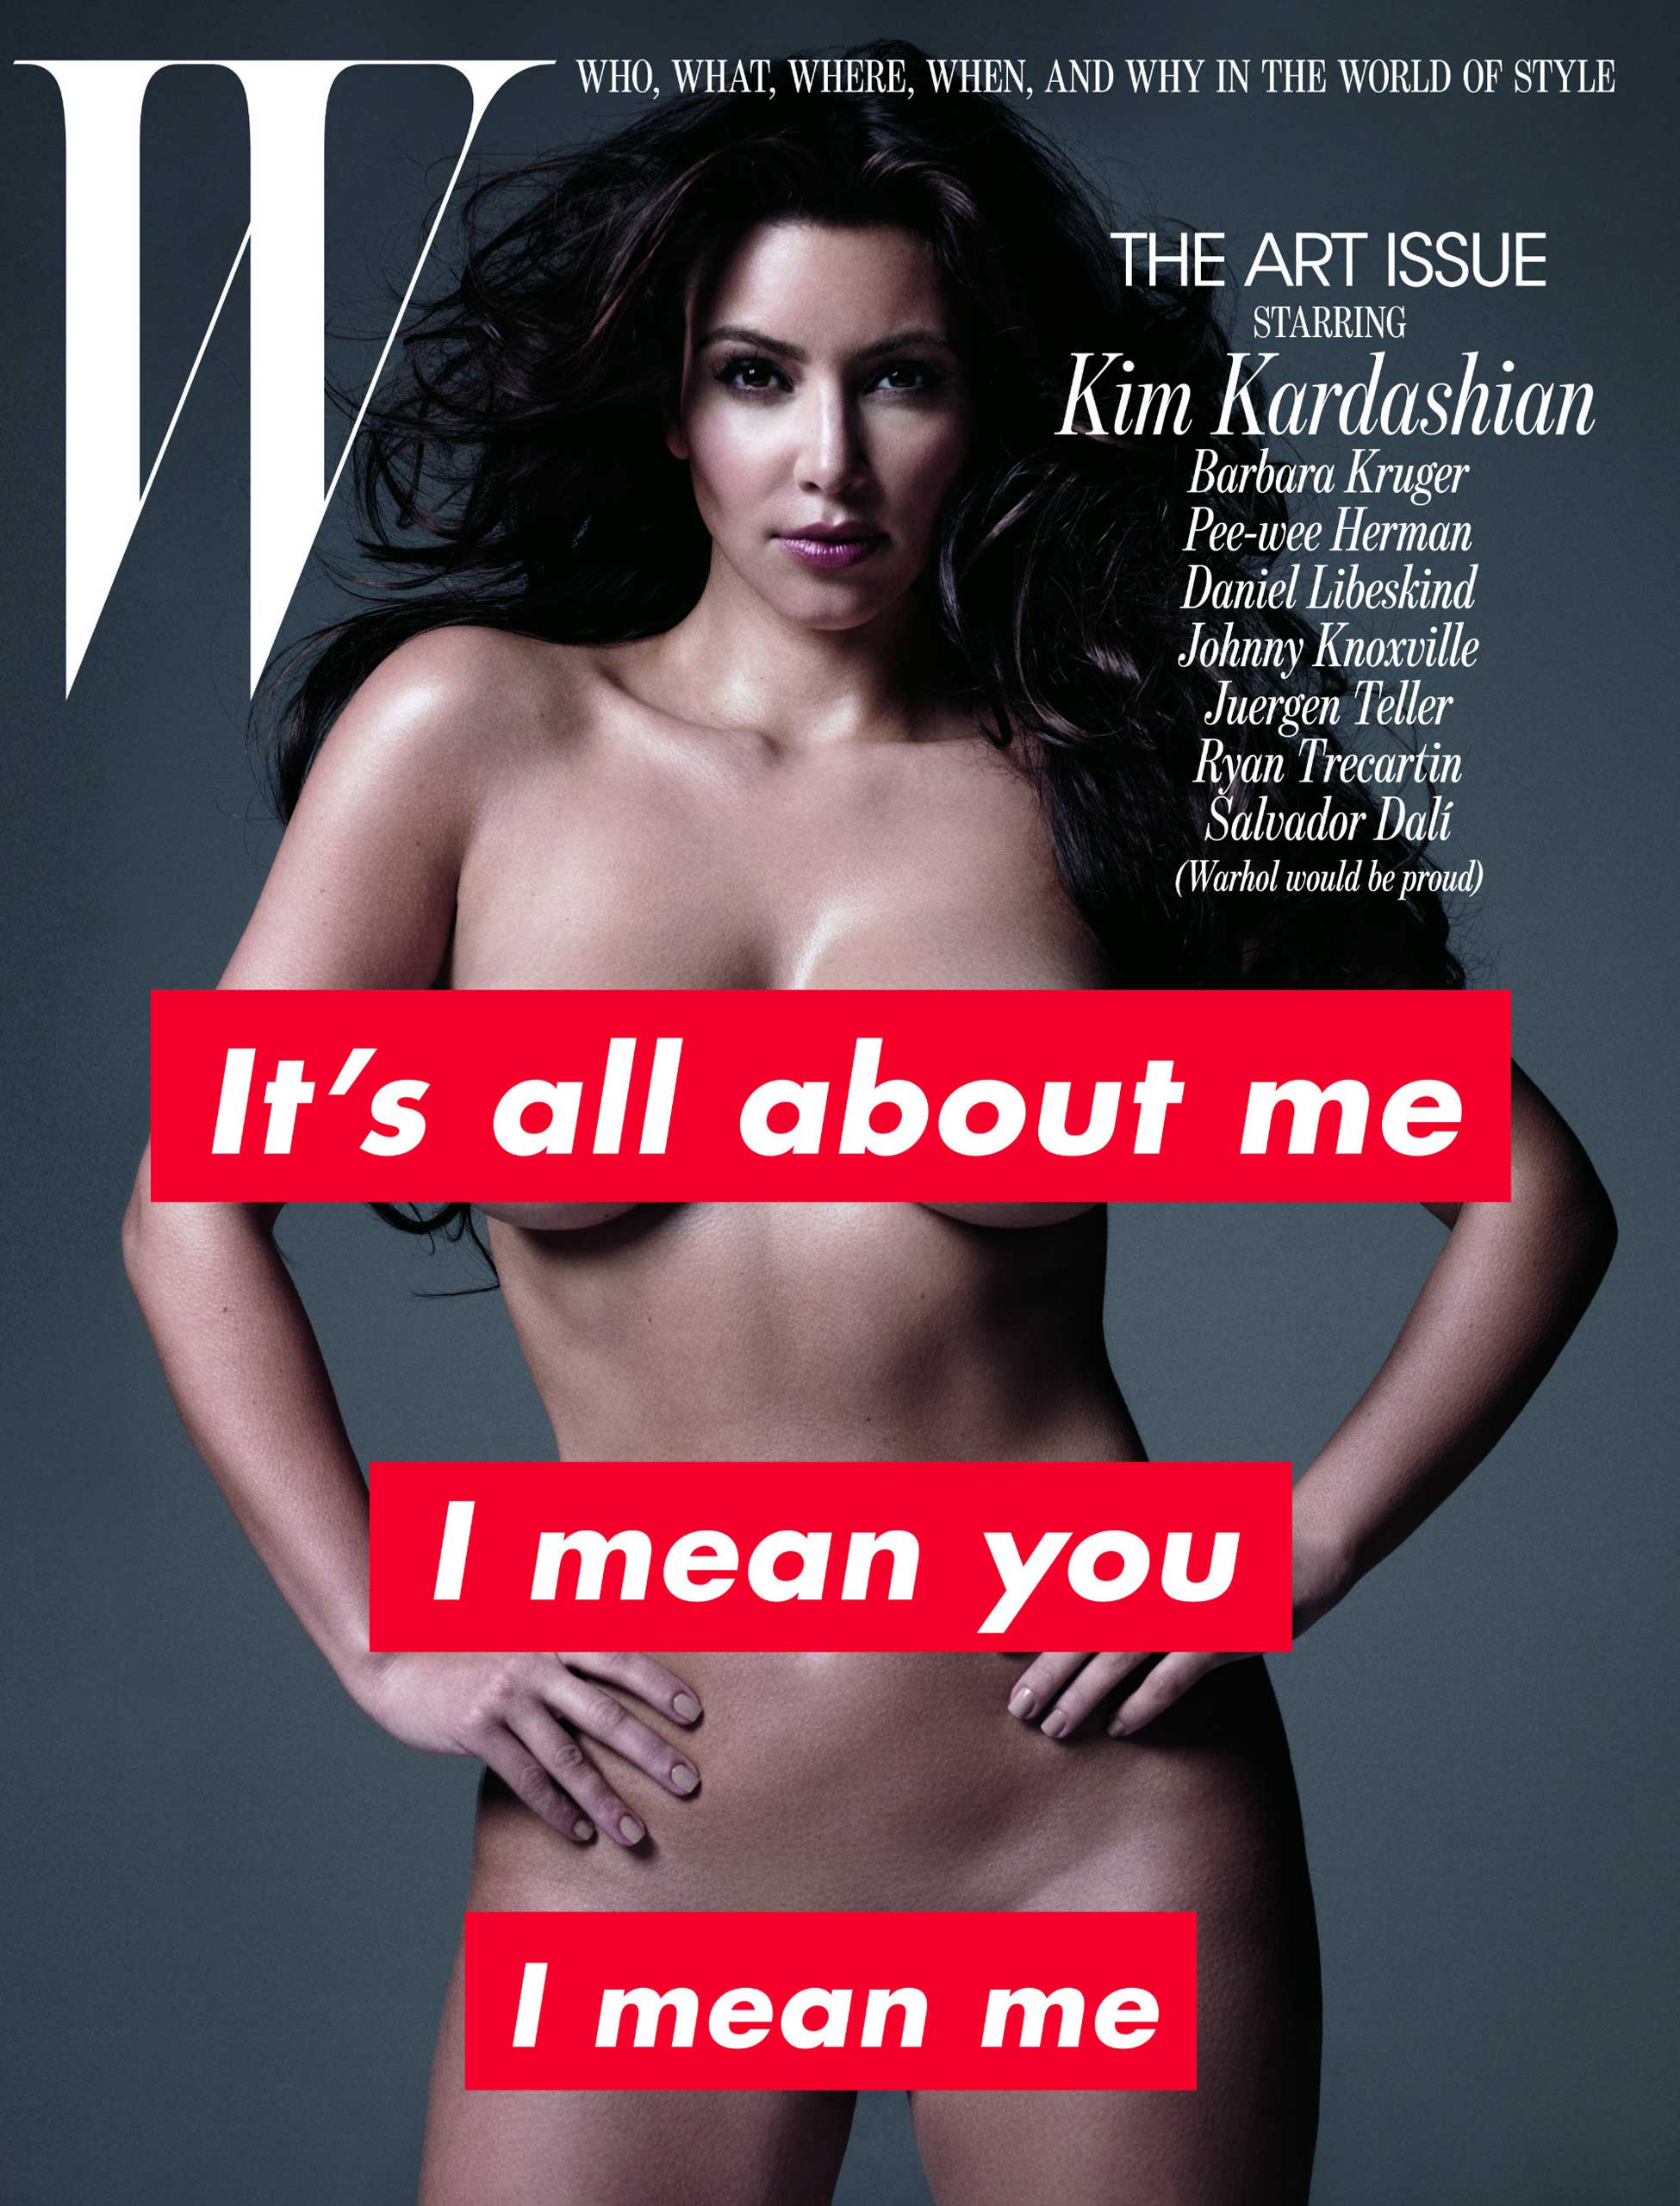 Channeling the typographic work of the iconic American artist Barbara Kruger, the cover of <i>W</i> magazine's November 2010 issue found Kim Kardashian (almost) bearing it all. Inside its pages, the only layer she had on was a thin coat of silver body paint.